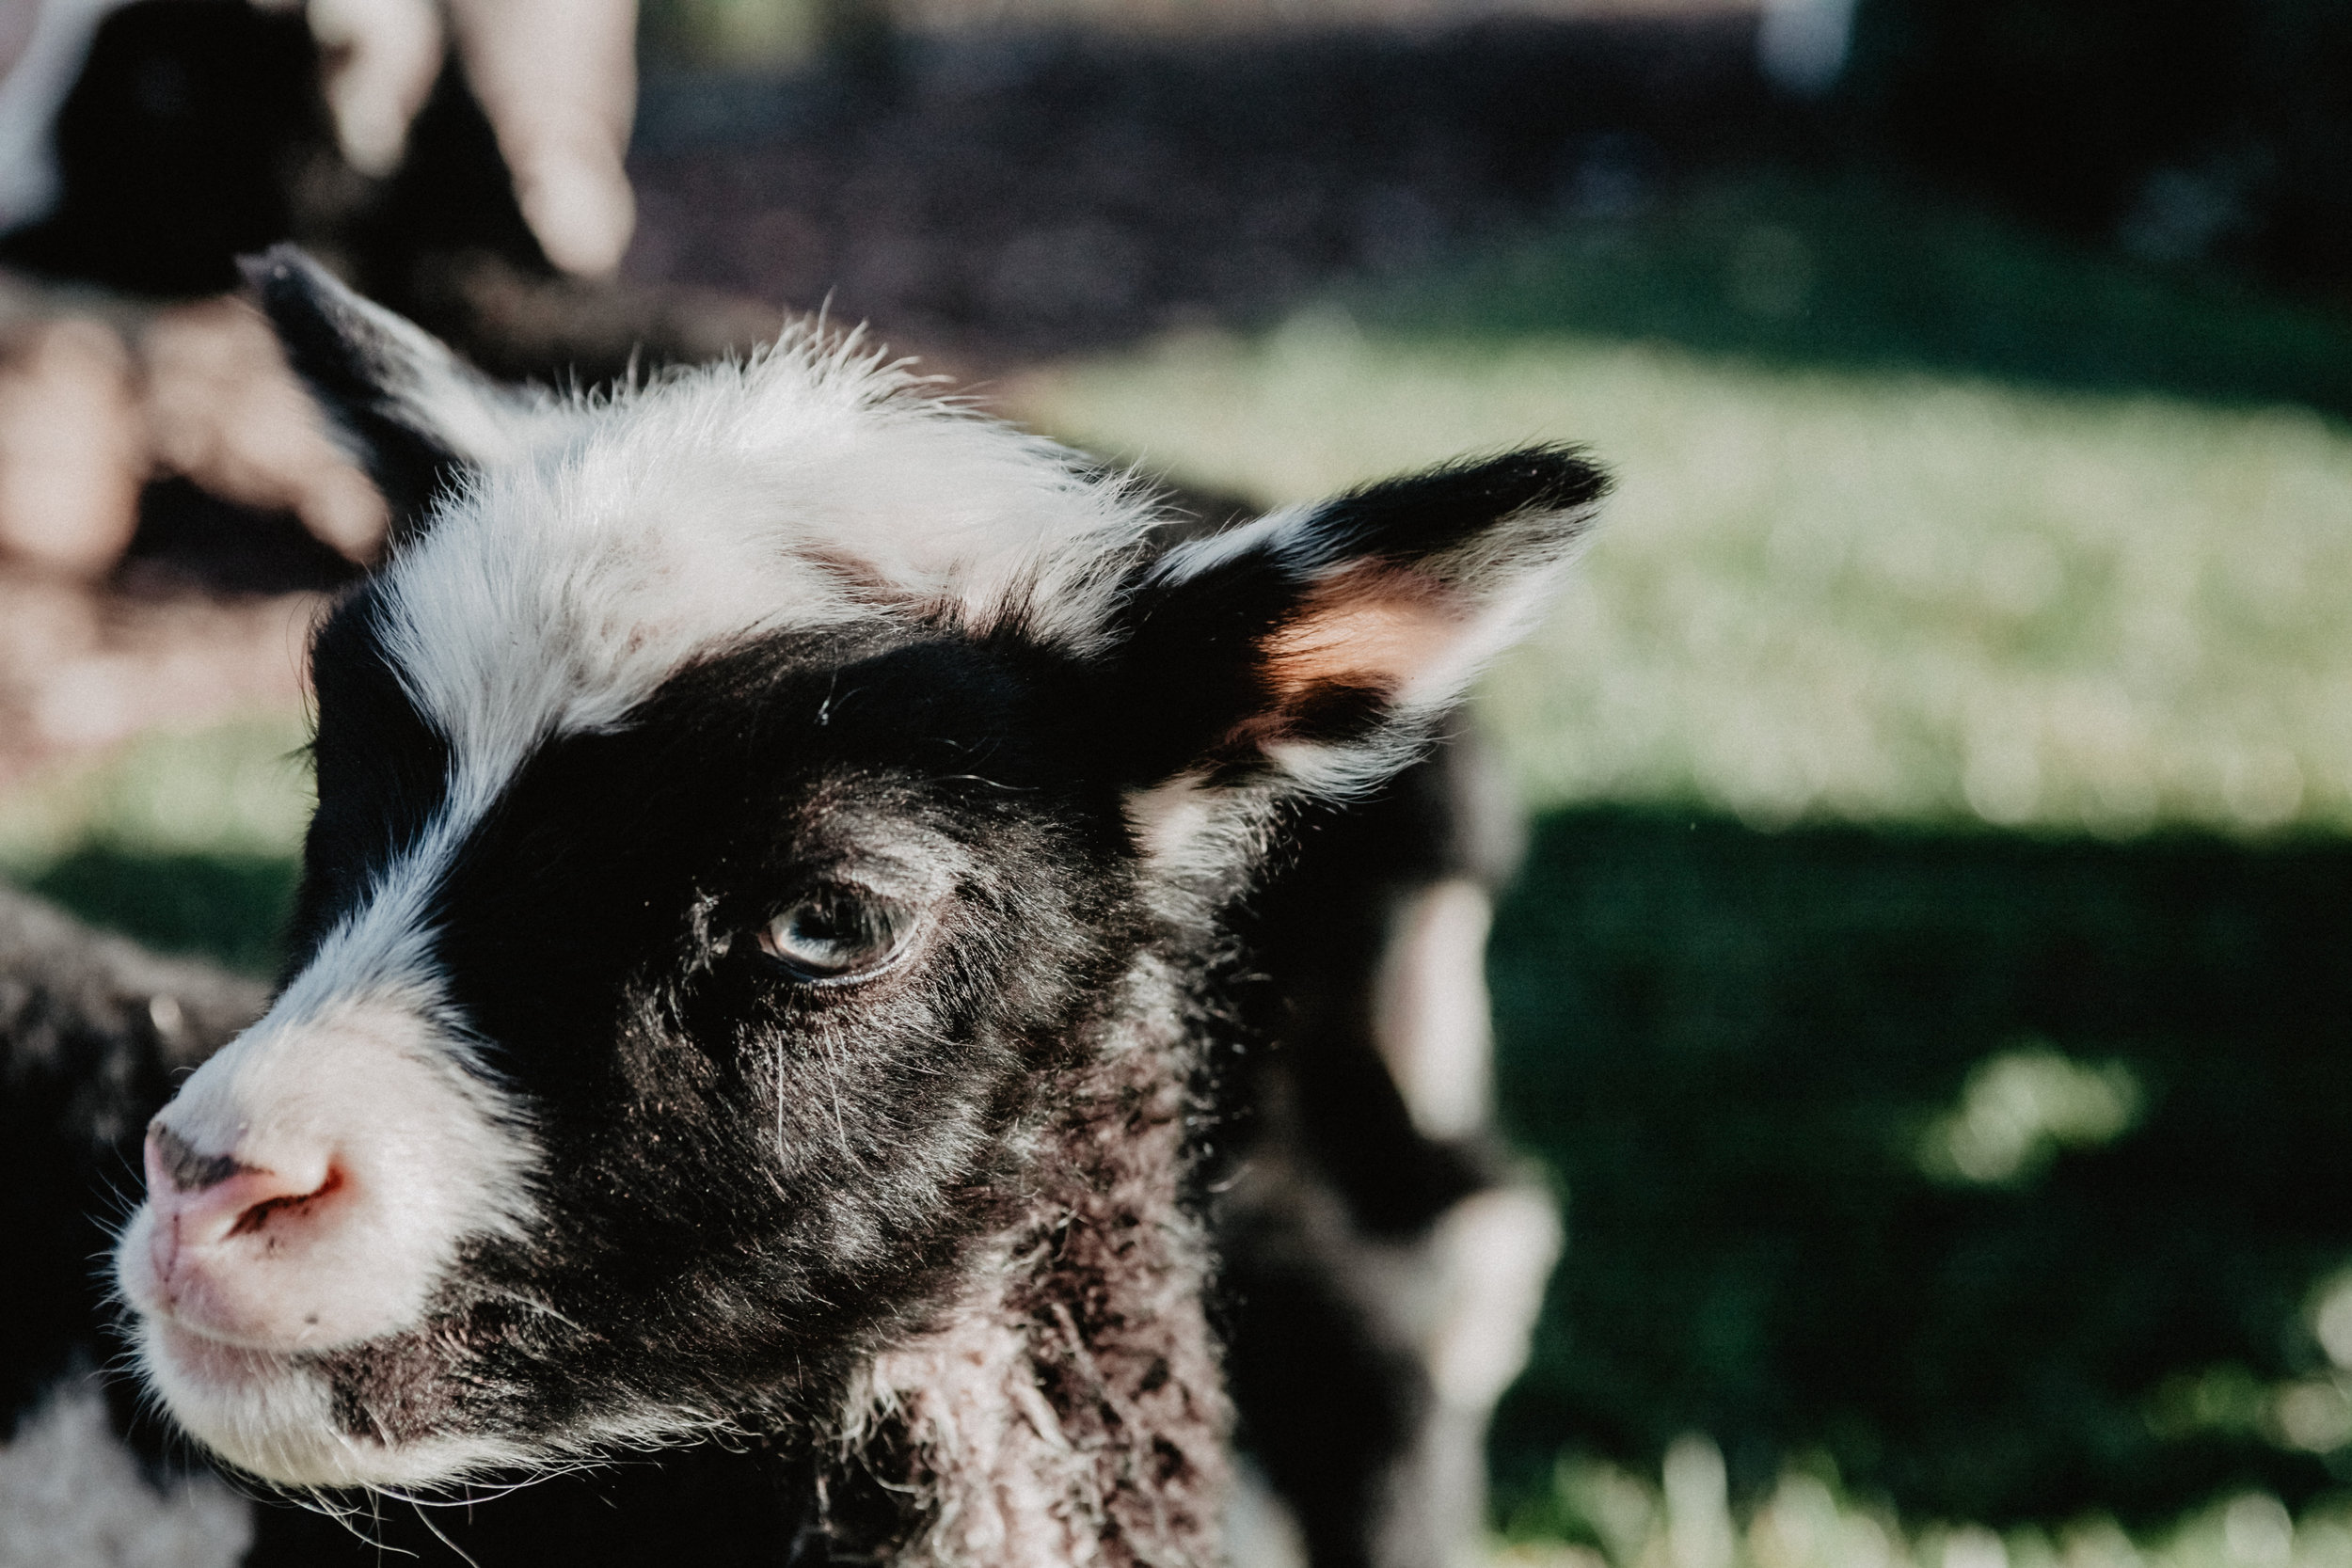 Baby Lamb at Forever and Always Farm near San Diego